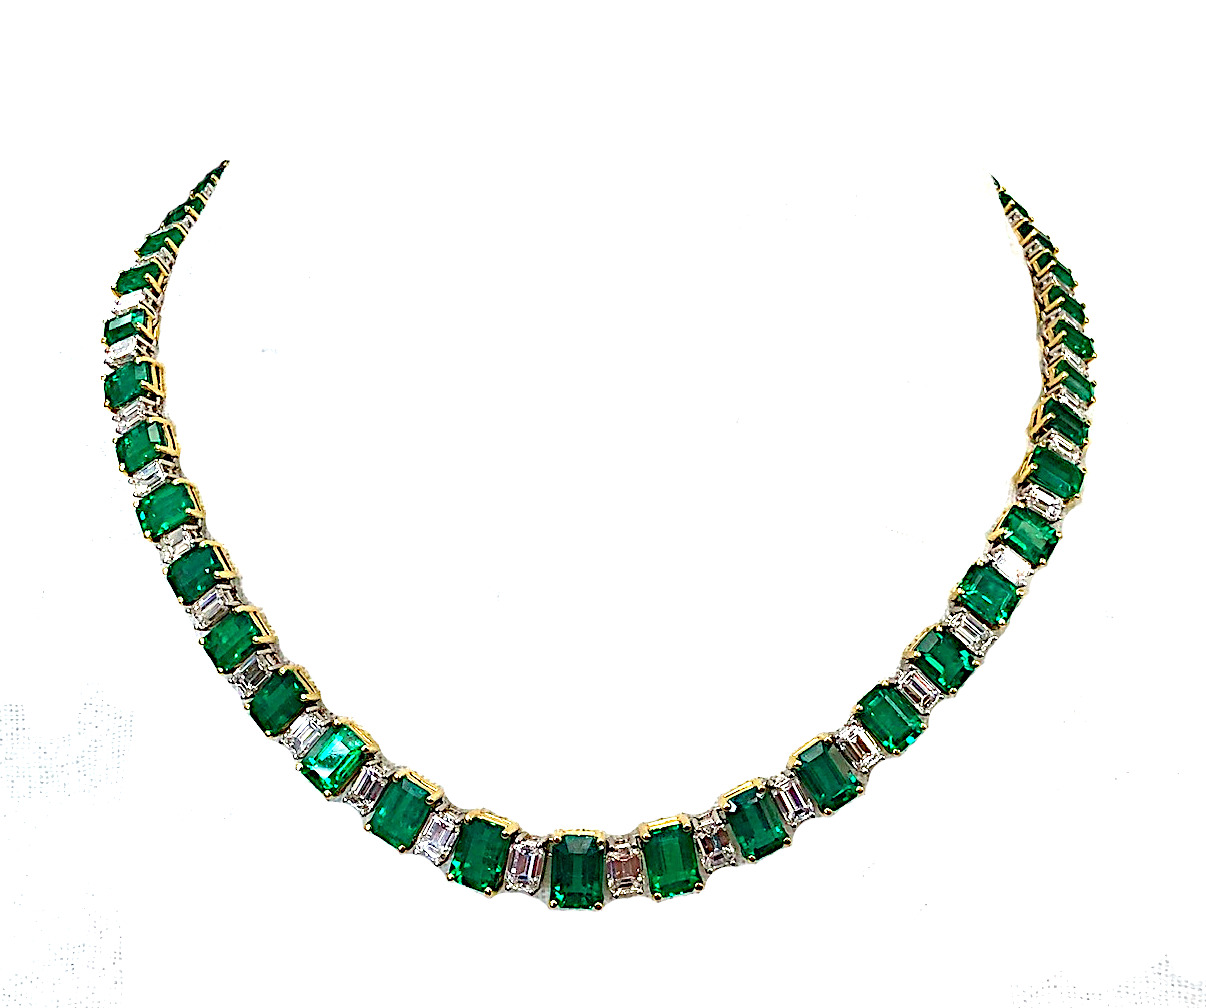 38ct Emerald and Diamond Necklace